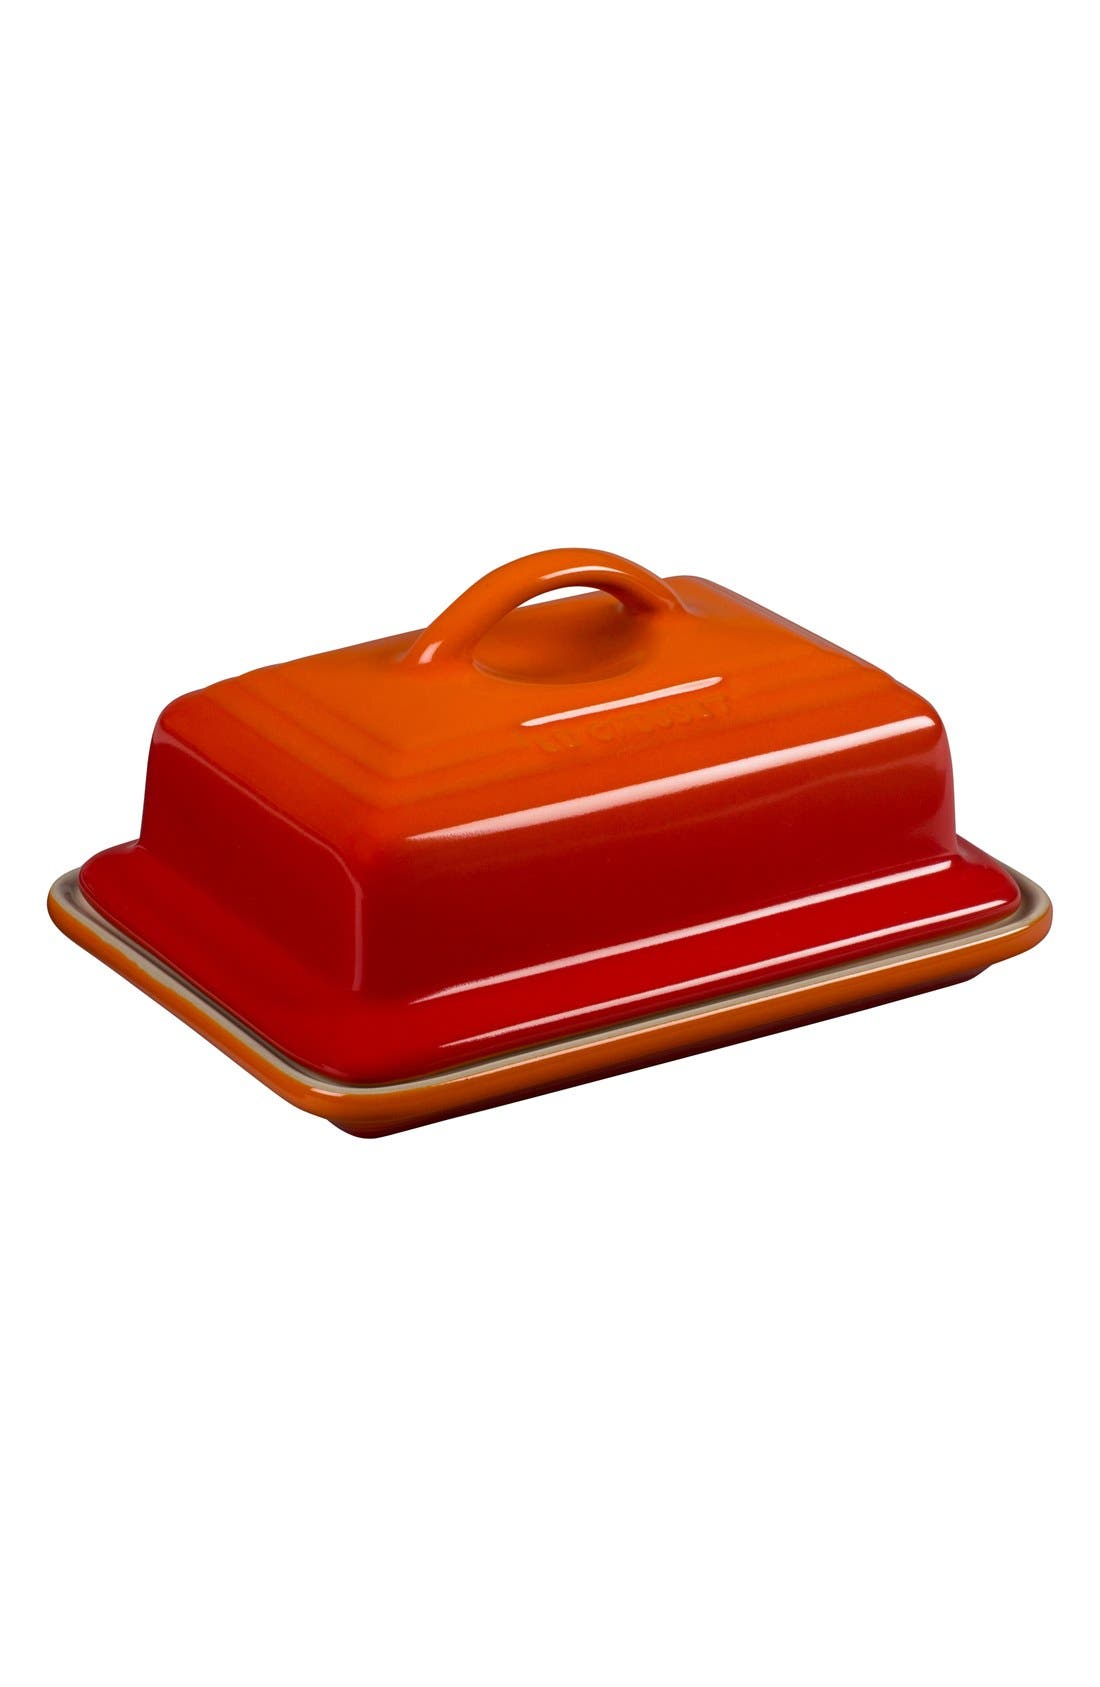 LE CREUSET 'Heritage' Stoneware Butter Dish & Lid